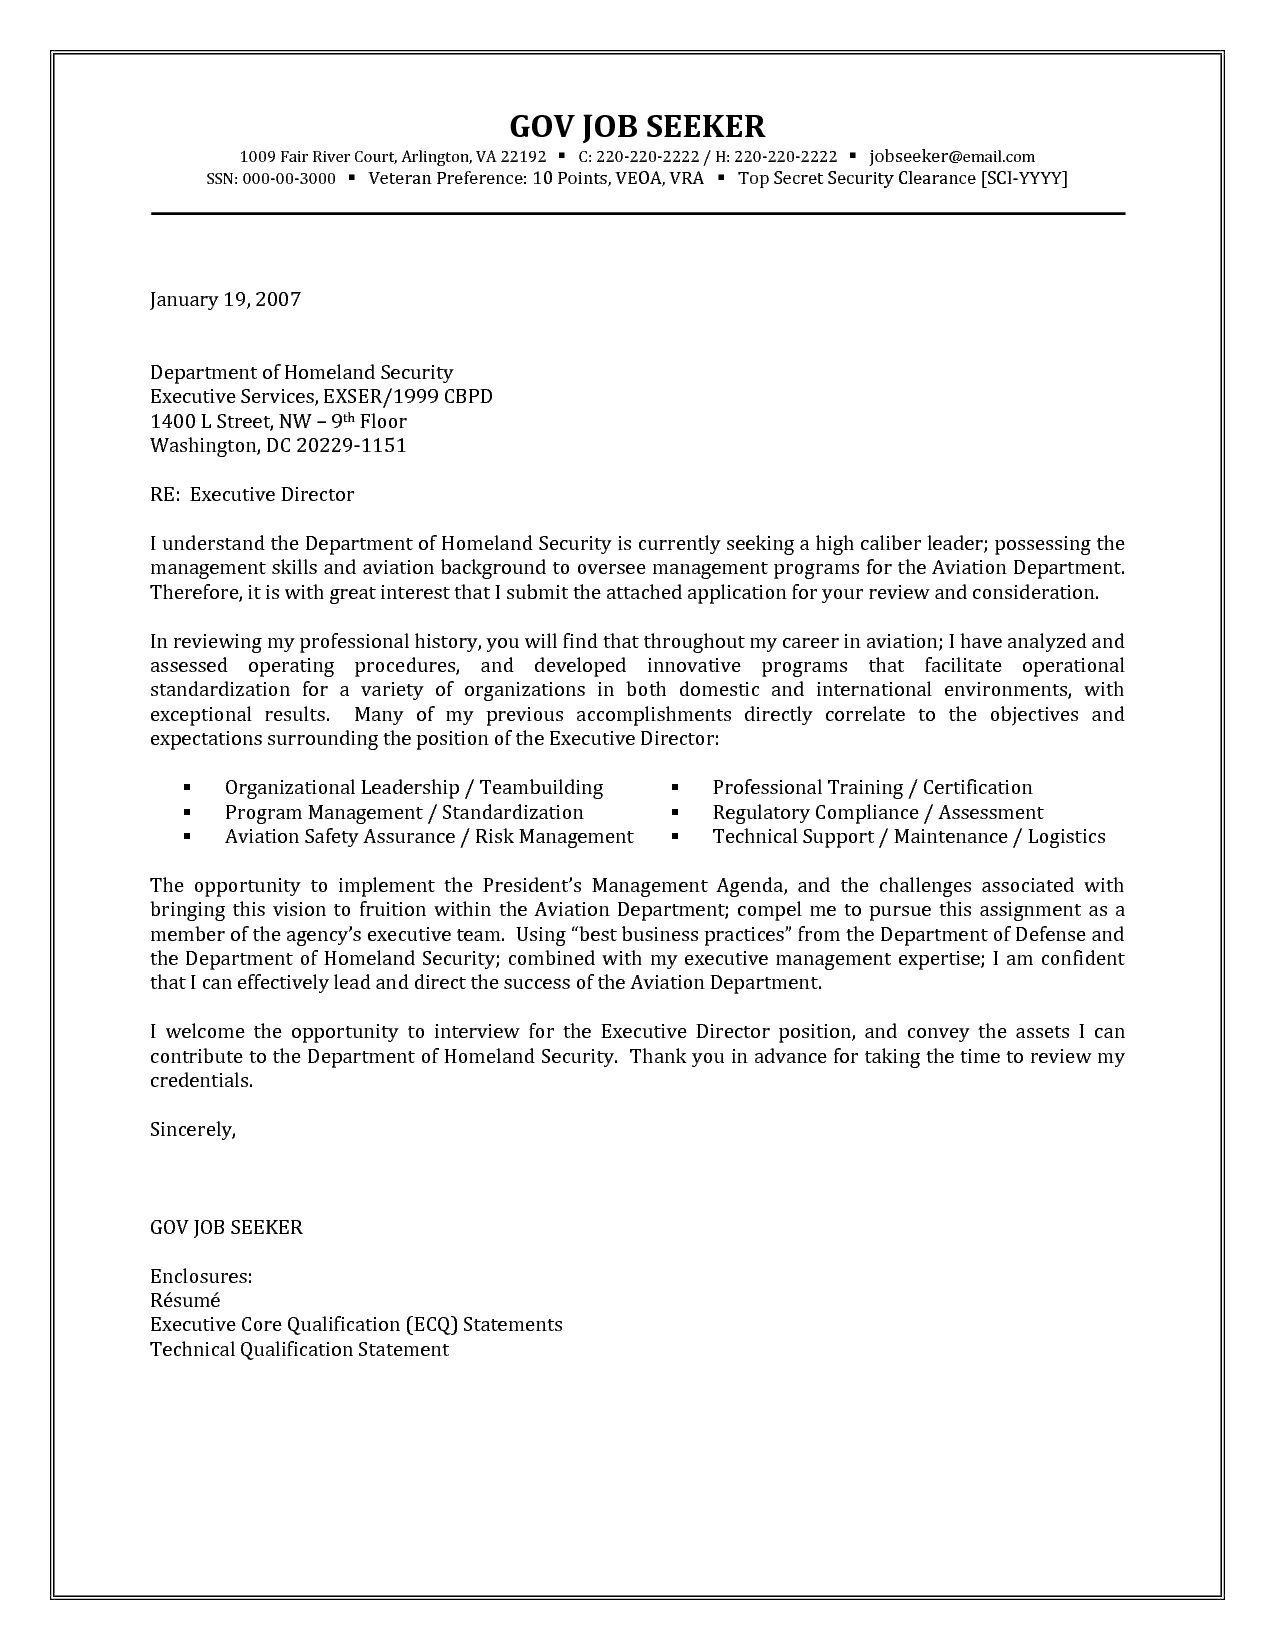 Government resume cover letter examples httpjobresumesample government resume cover letter examples httpjobresumesample99government resume cover letter examples expocarfo Image collections